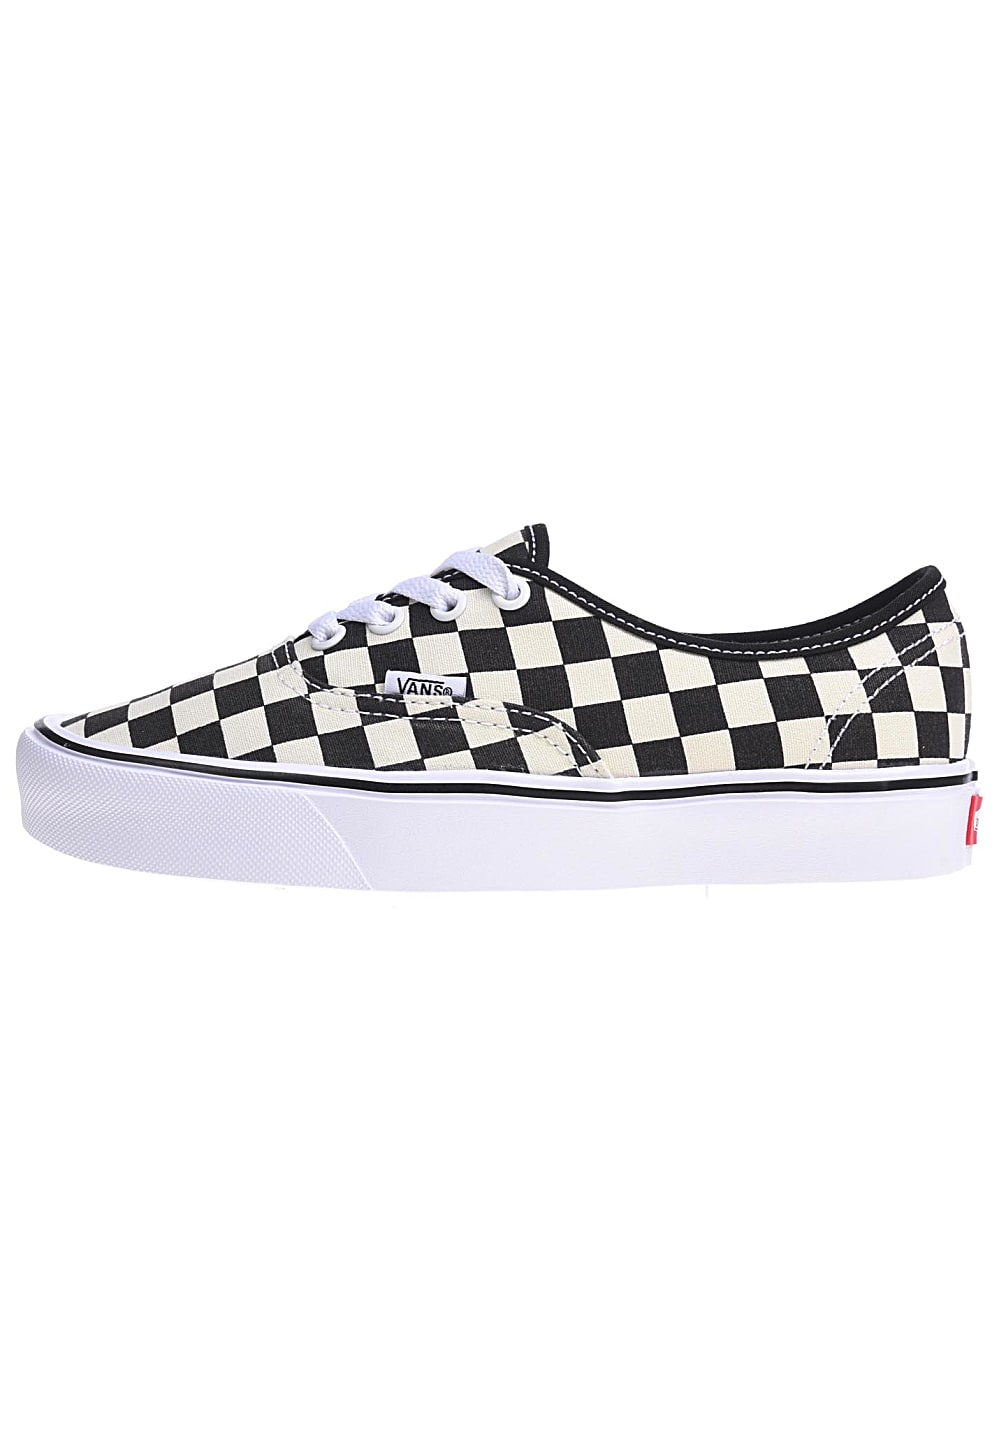 VANS Authentic Lite - Sneaker - Schwarz